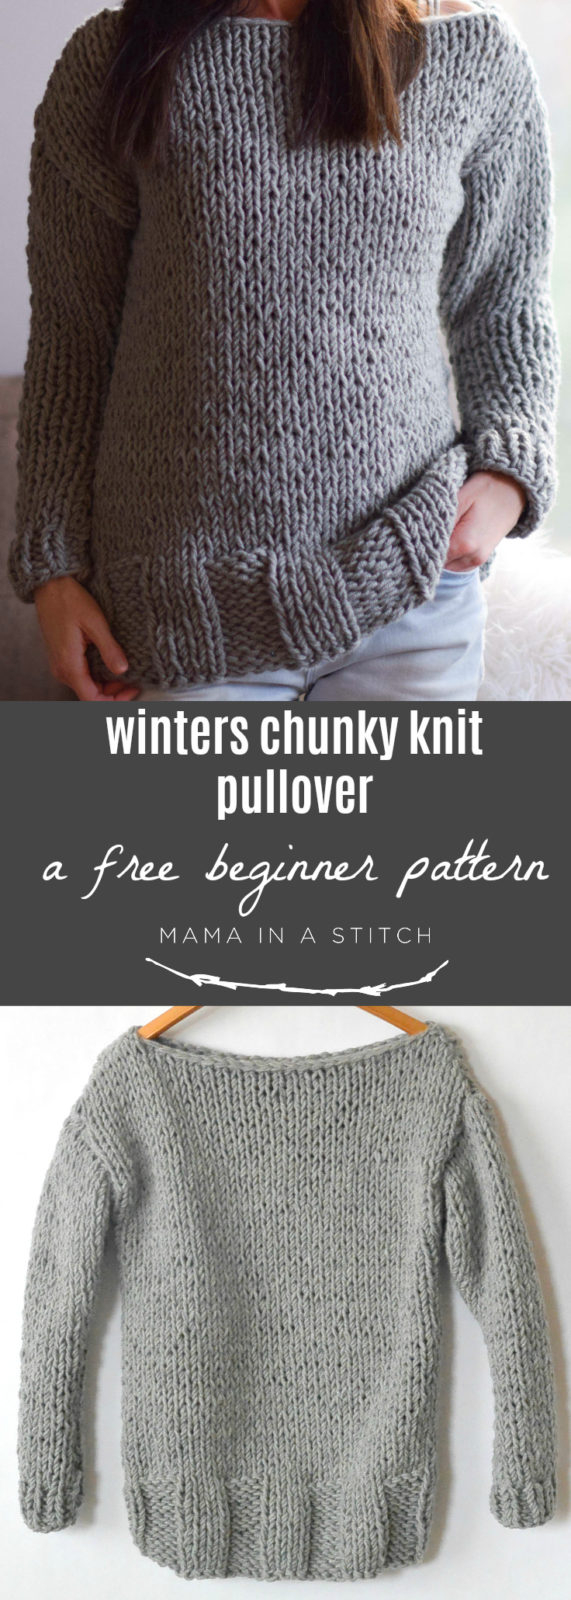 Free Knitting Pattern Sweater Winters Chunky Easy Knit Pullover Pattern Mama In A Stitch